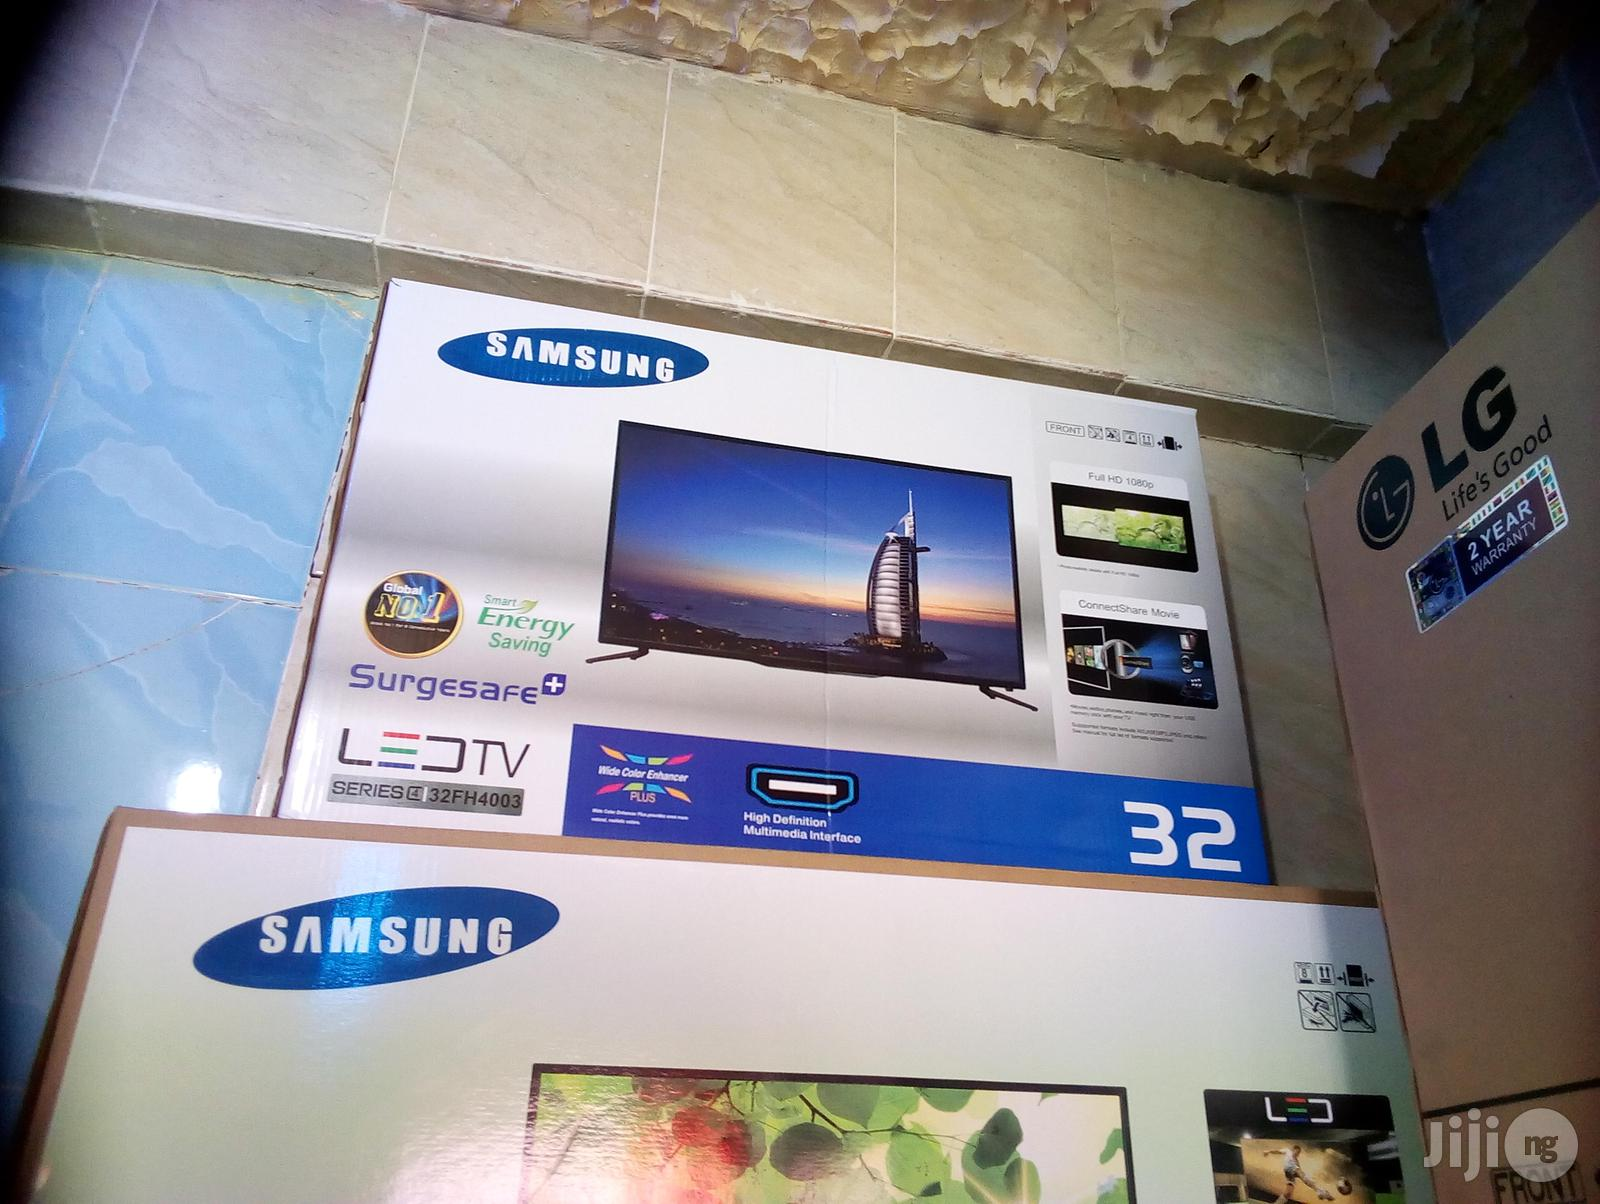 Samsung 43 Inches Led HDMI Television | TV & DVD Equipment for sale in Ojo, Lagos State, Nigeria